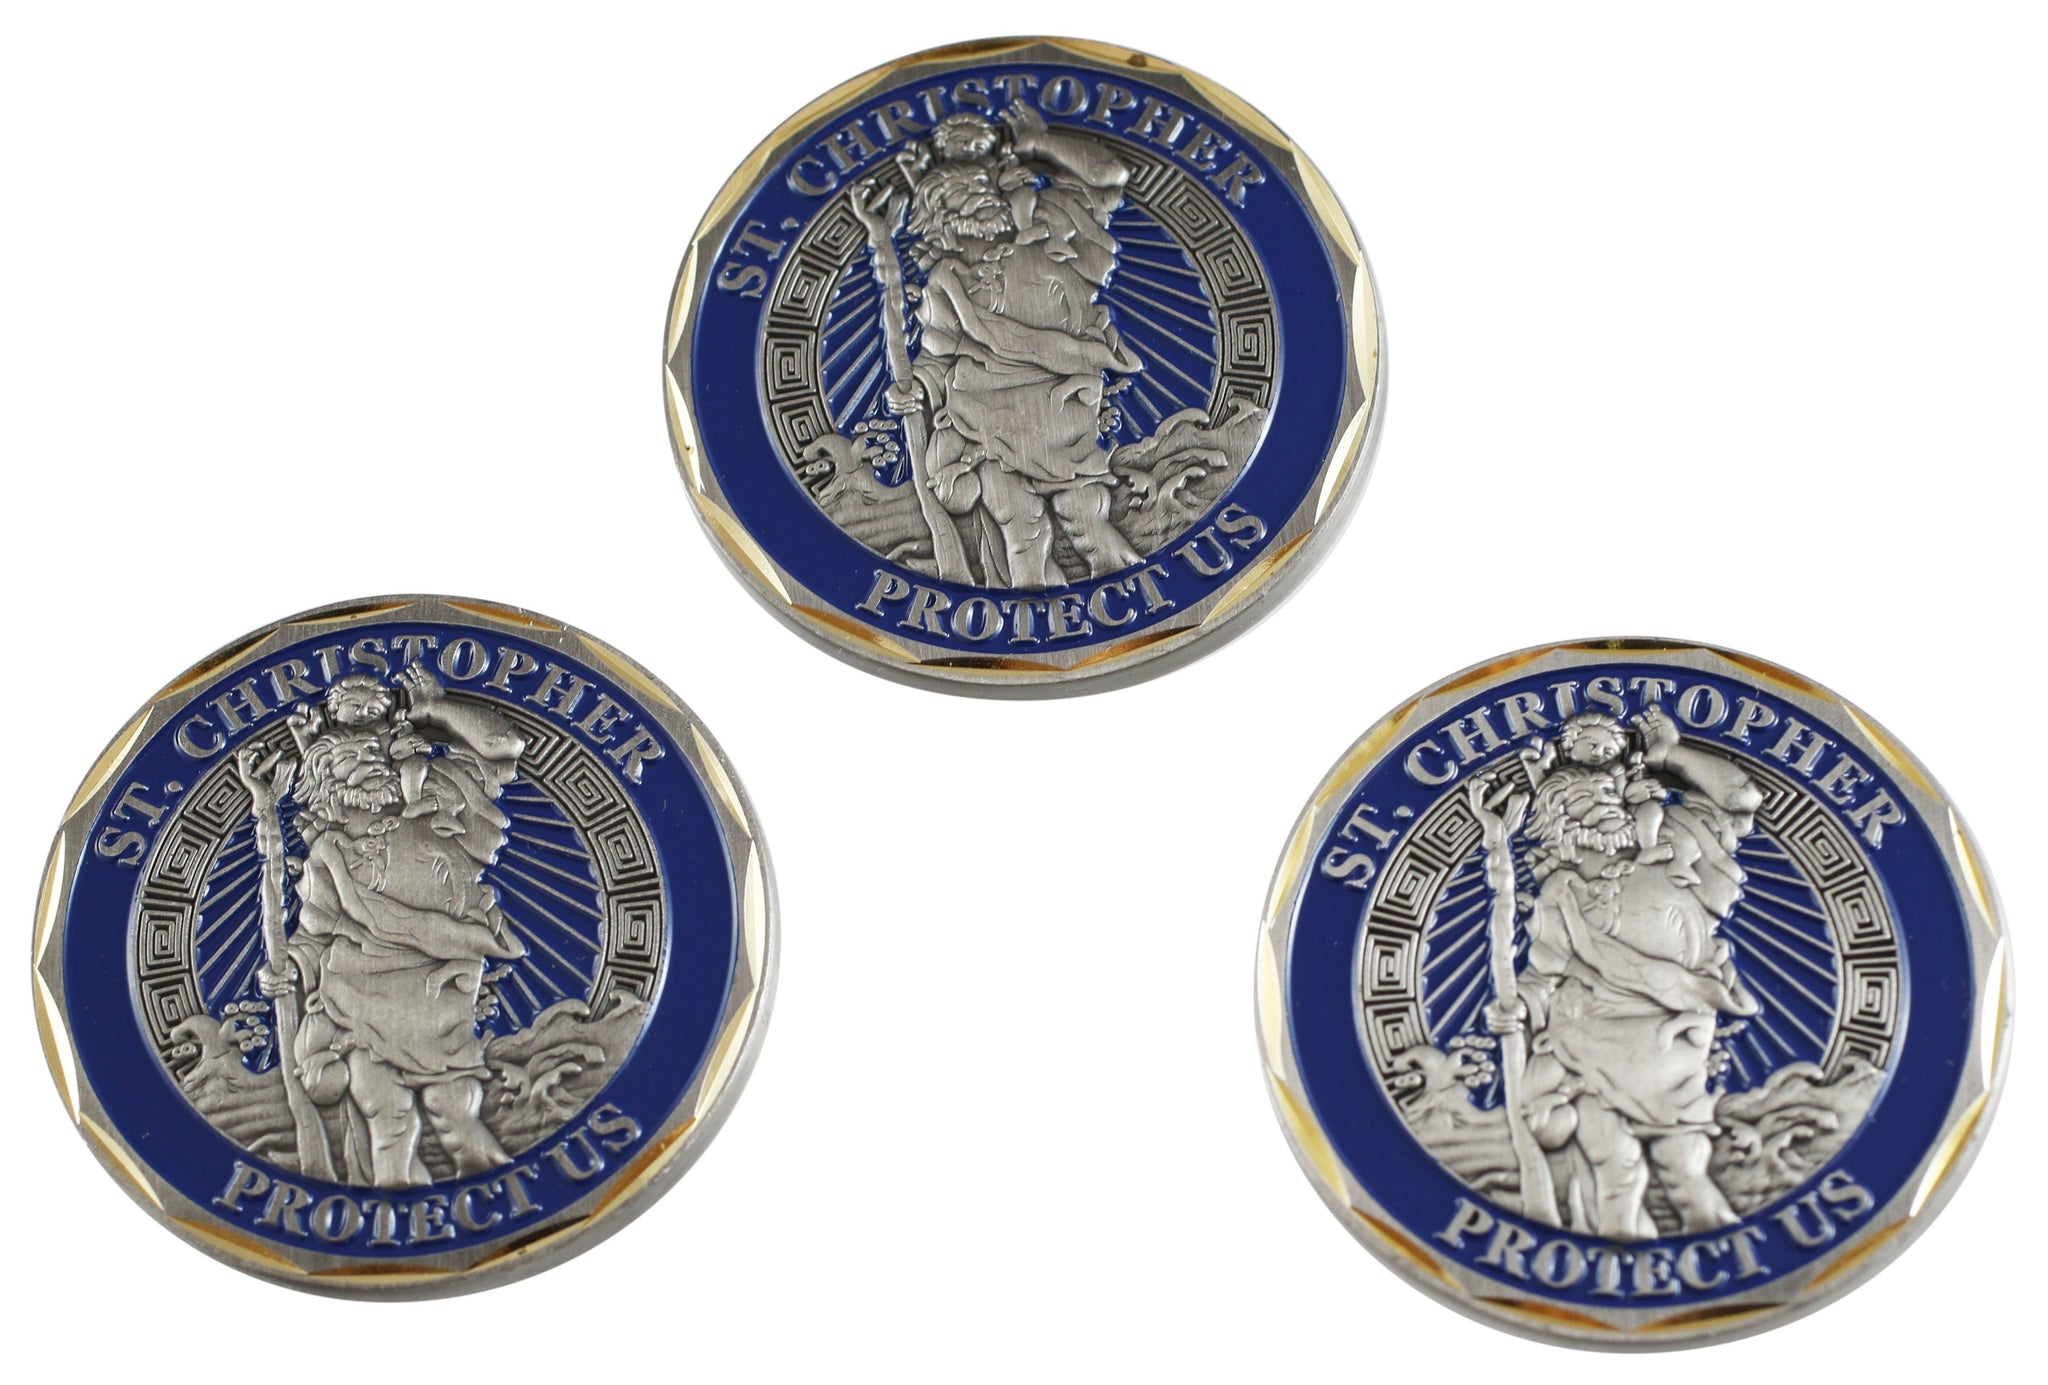 St Christopher Protect Us Challenge Prayer Coin